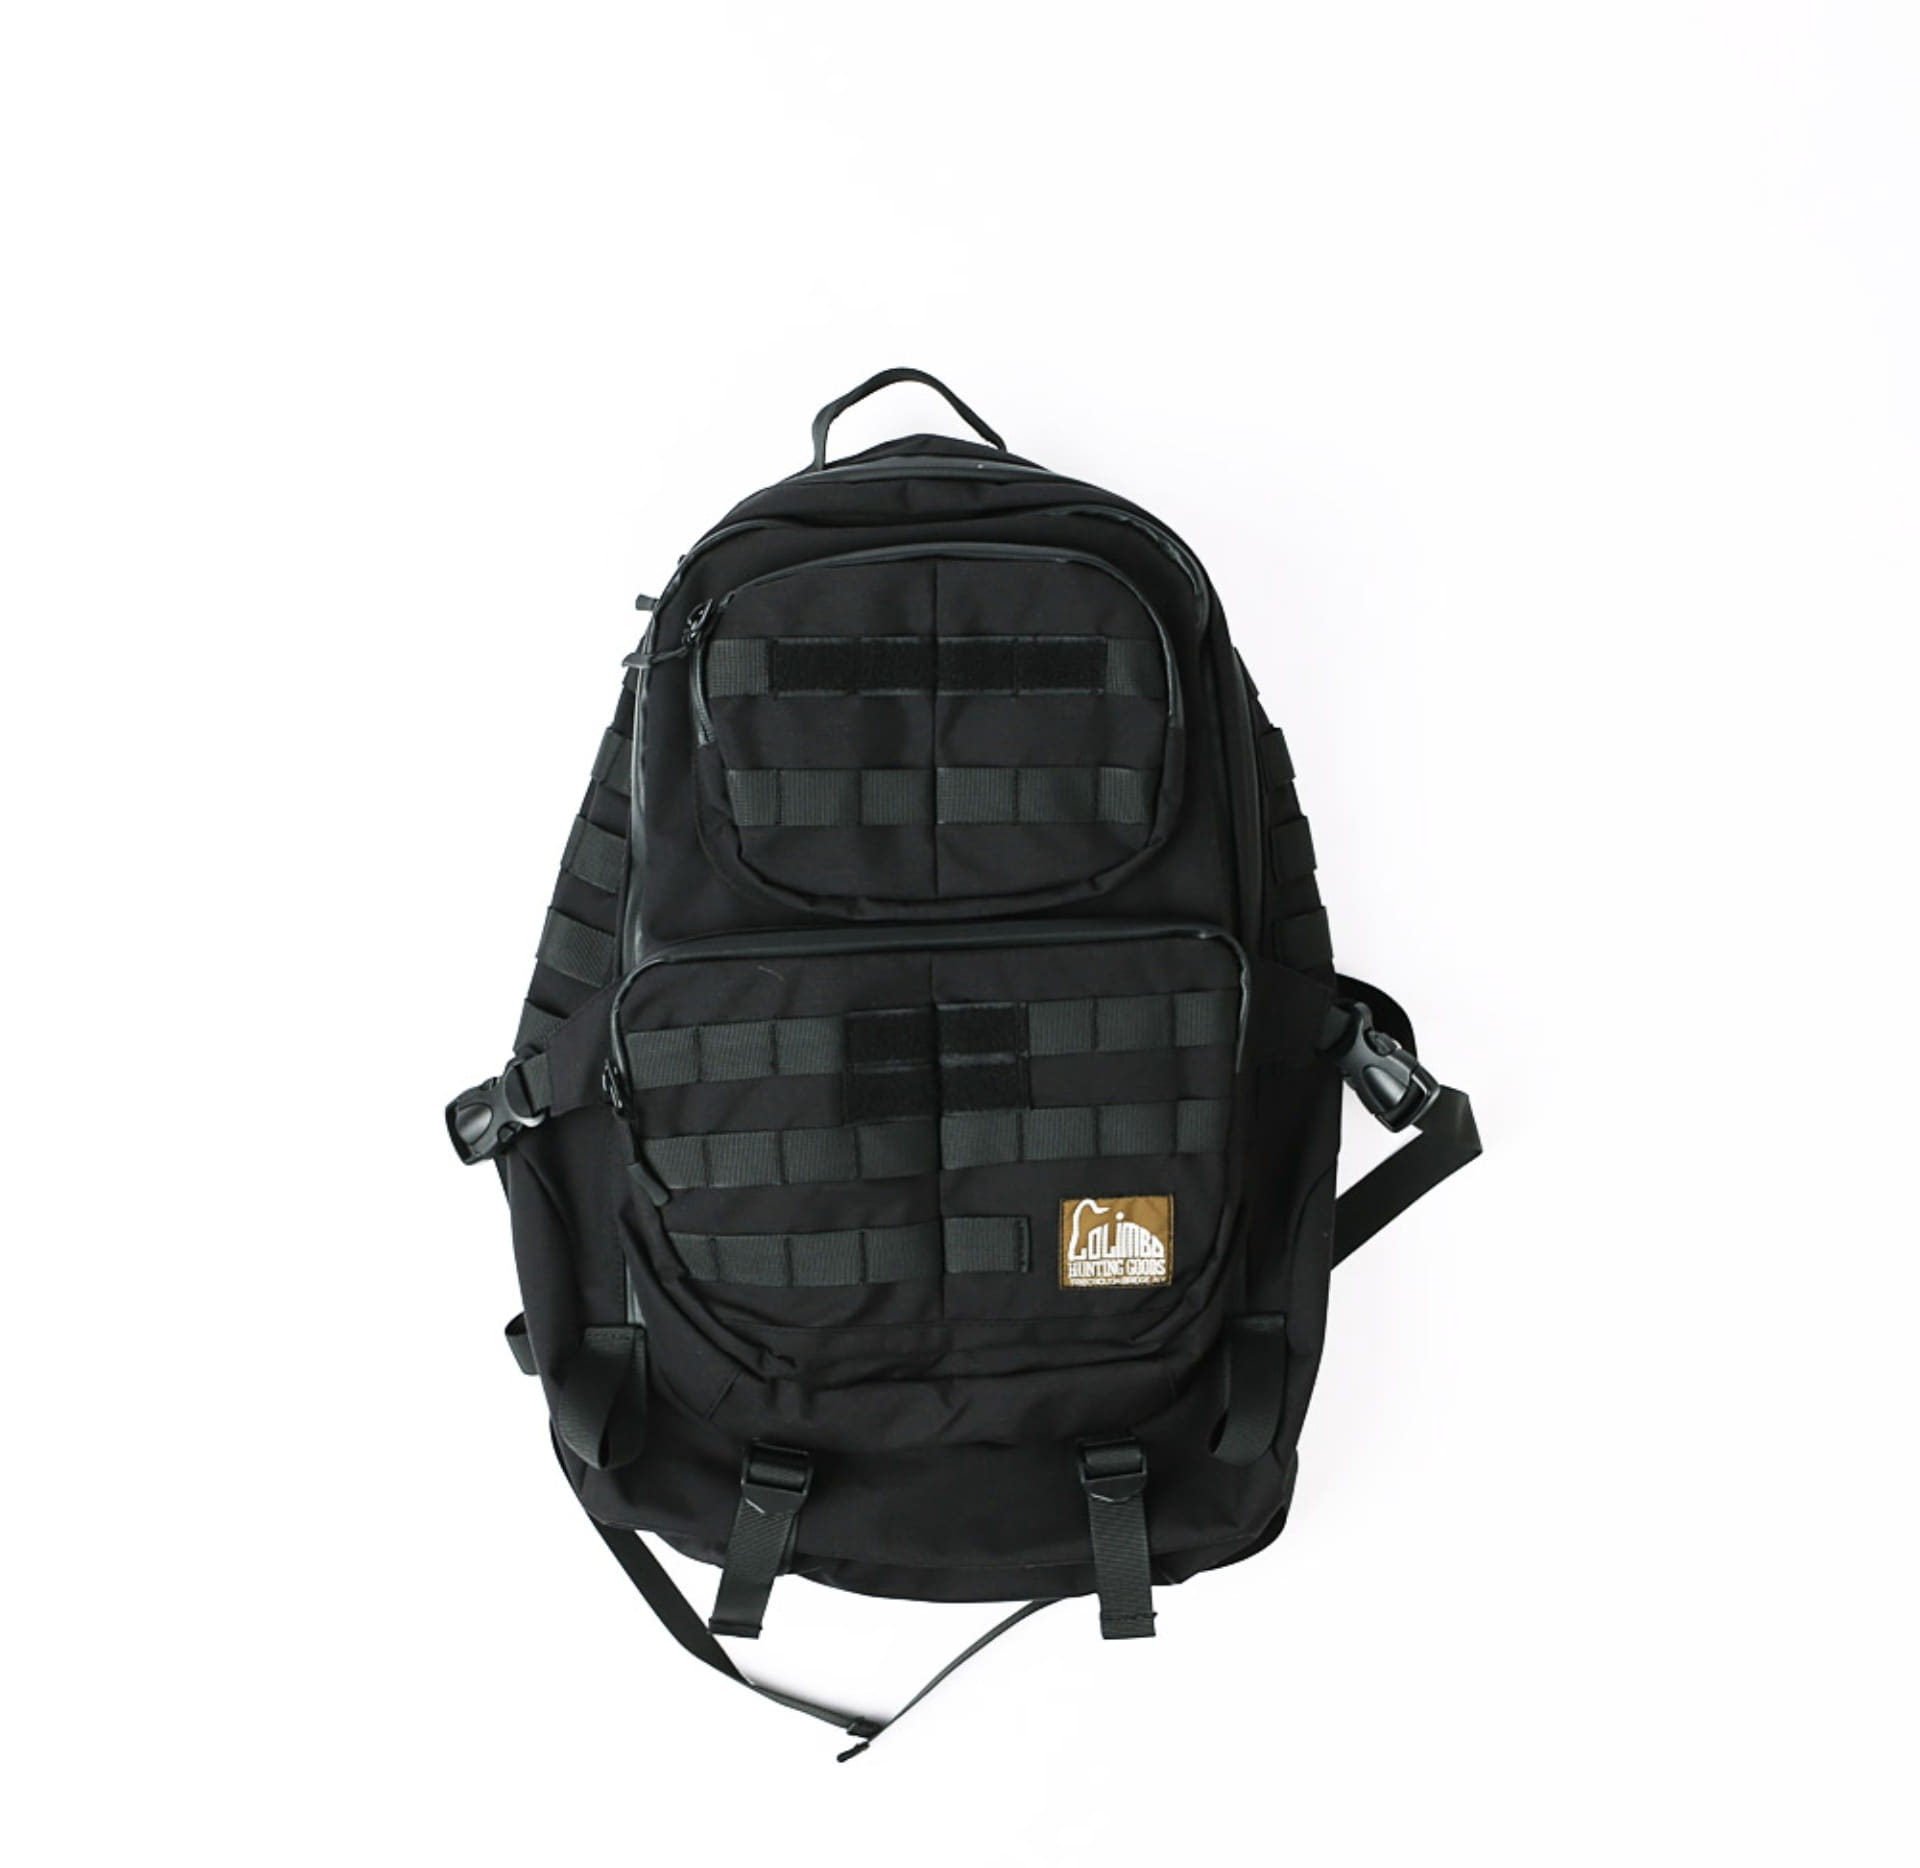 Tactical BackpakSONORAN 3 DAYS ASSAULT PACK(Black)